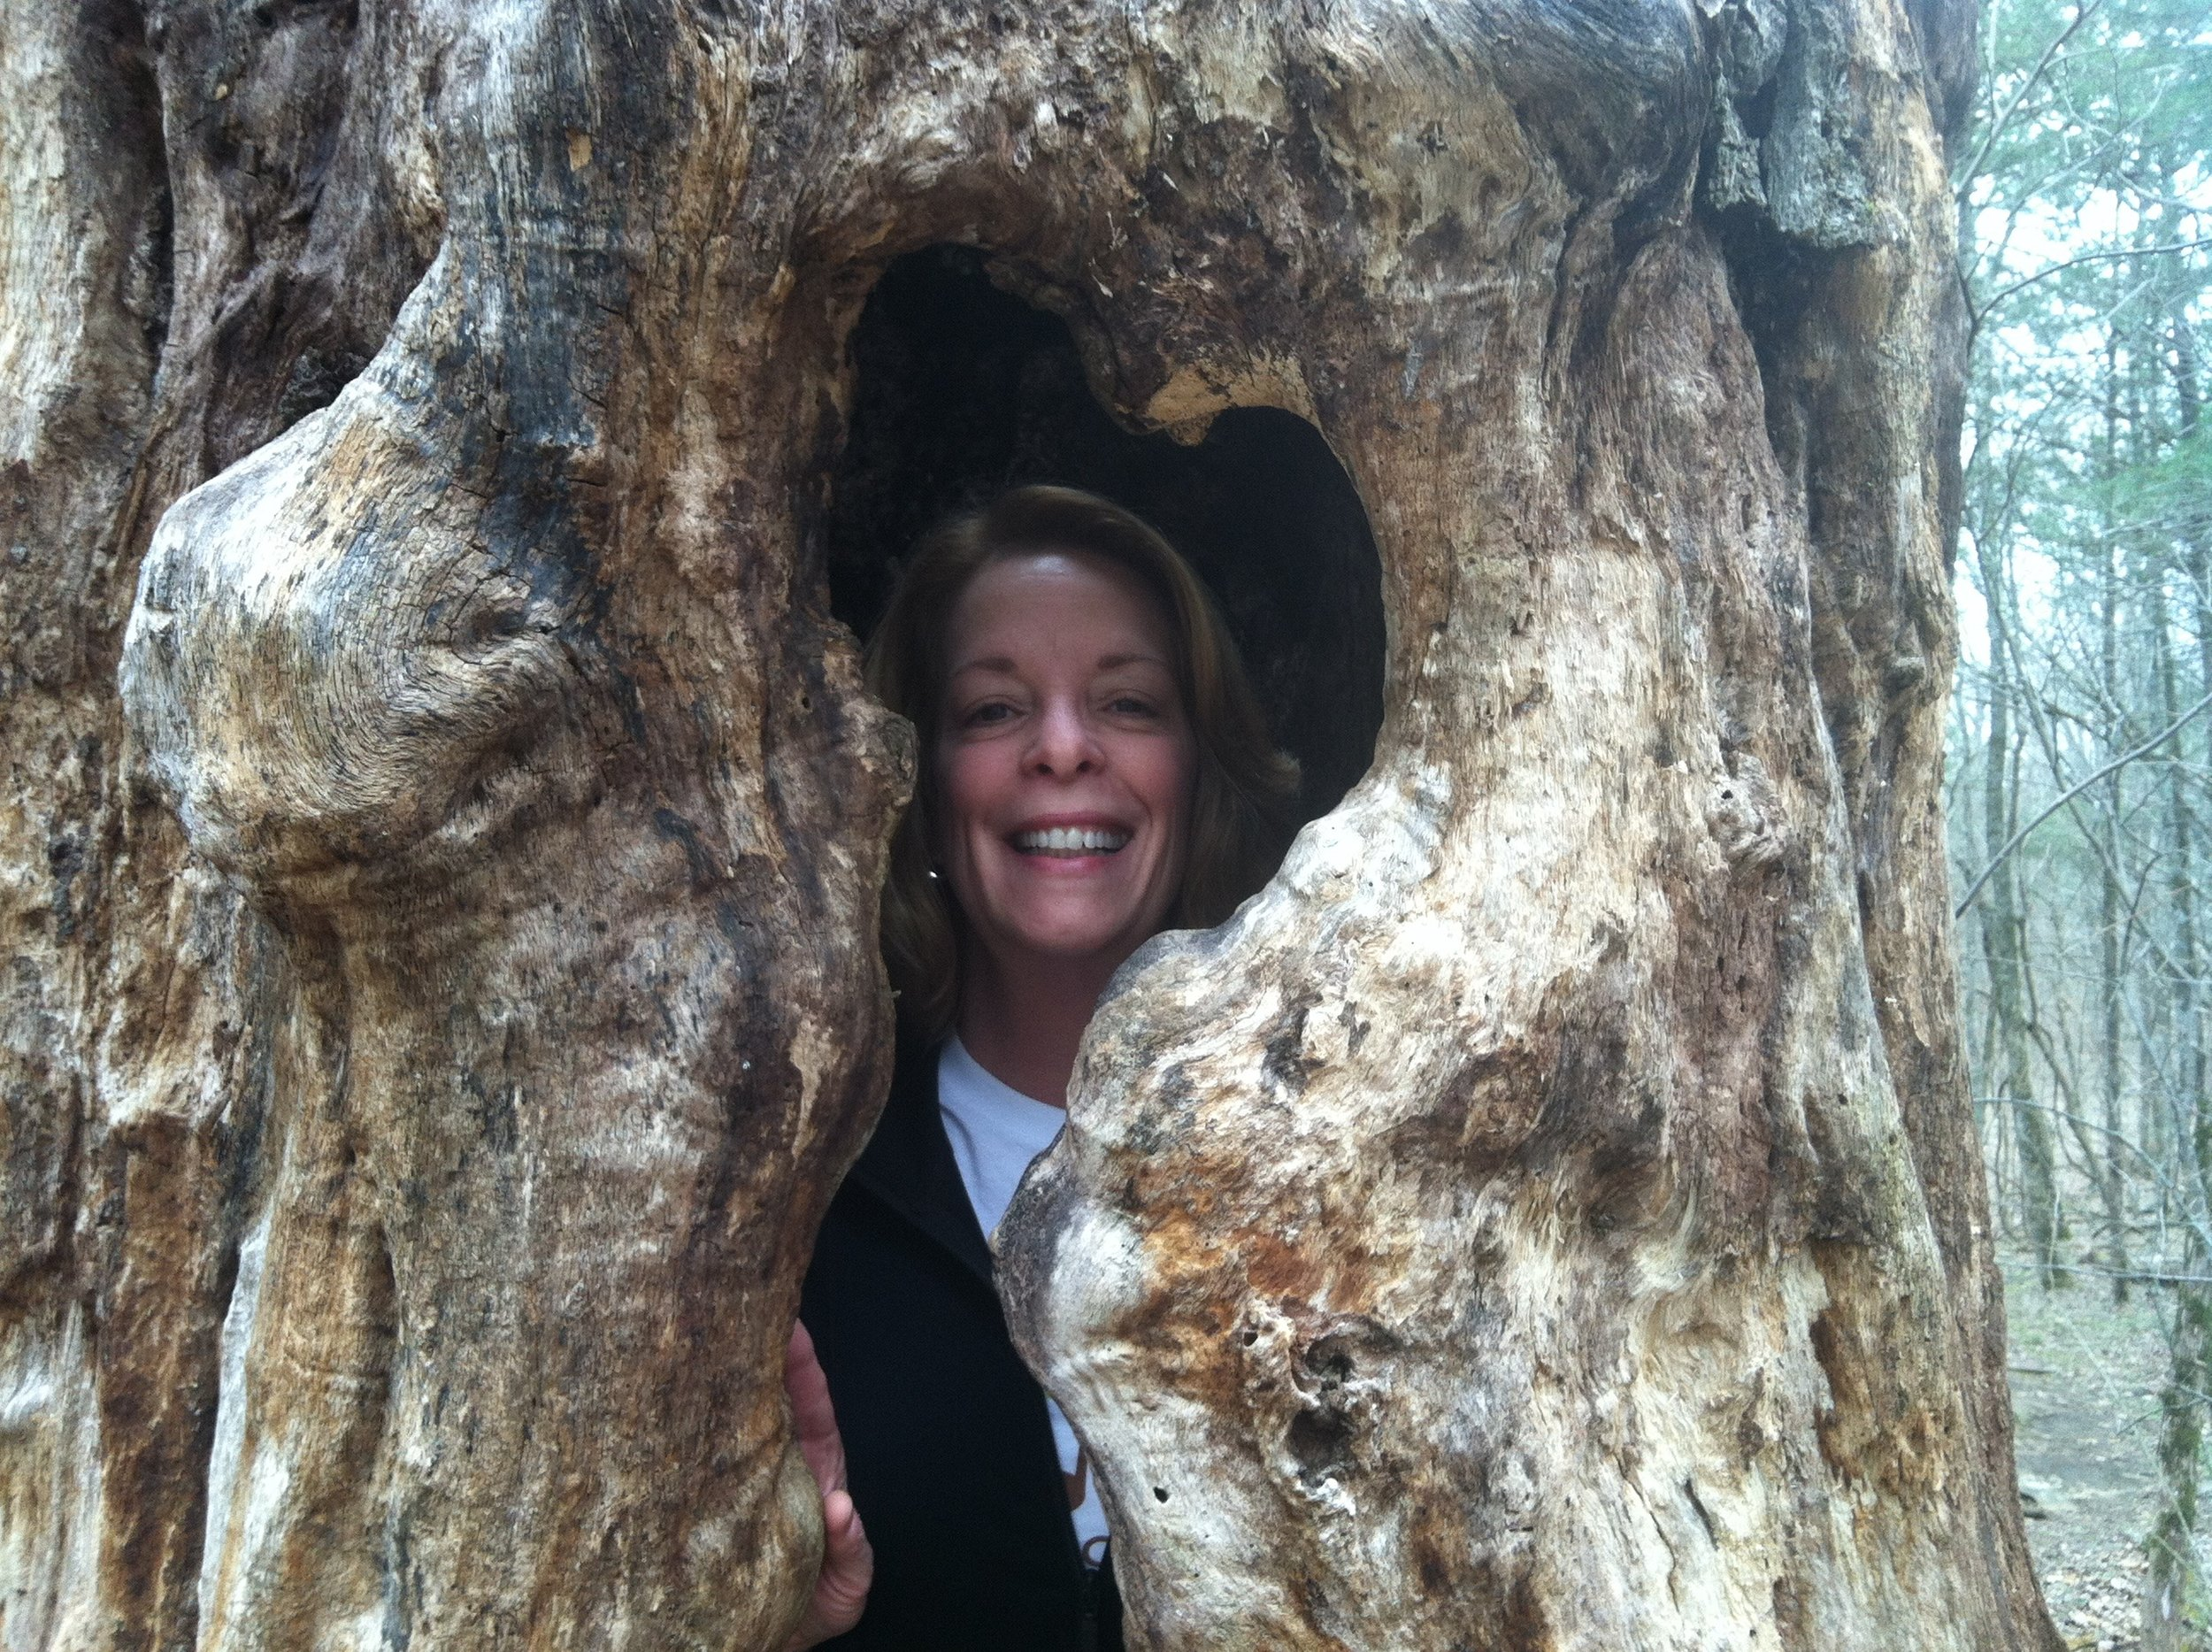 This is Peggy being hugged by a hollow tree shaped like a heart. February is heart health month. The synchronicity of this makes me smile. Happy Heart Health Month Peggy!